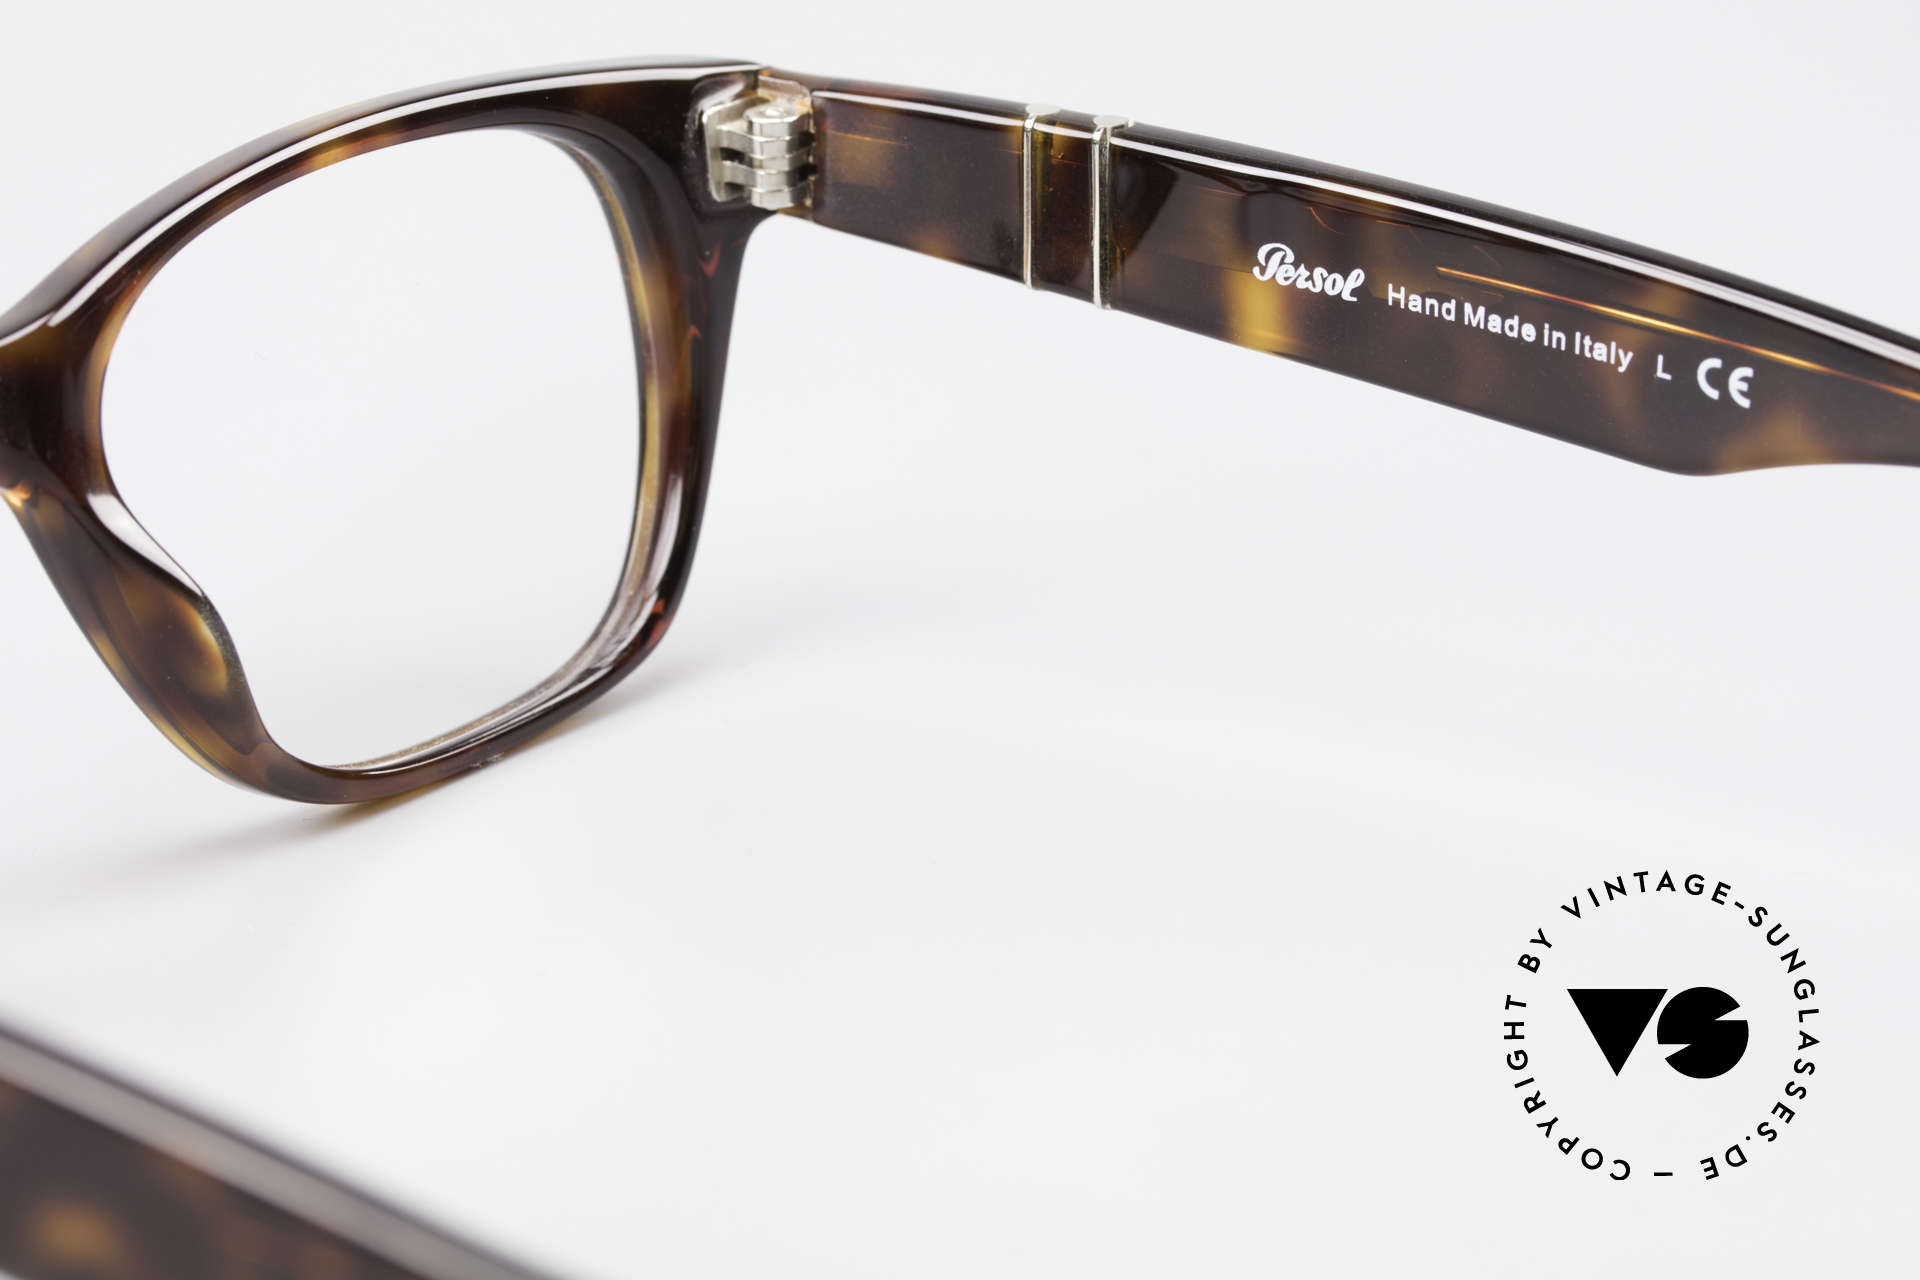 Persol 3039 Timeless Designer Eyeglasses, DEMO lenses can be replaced optionally, size 50/19, 140, Made for Men and Women